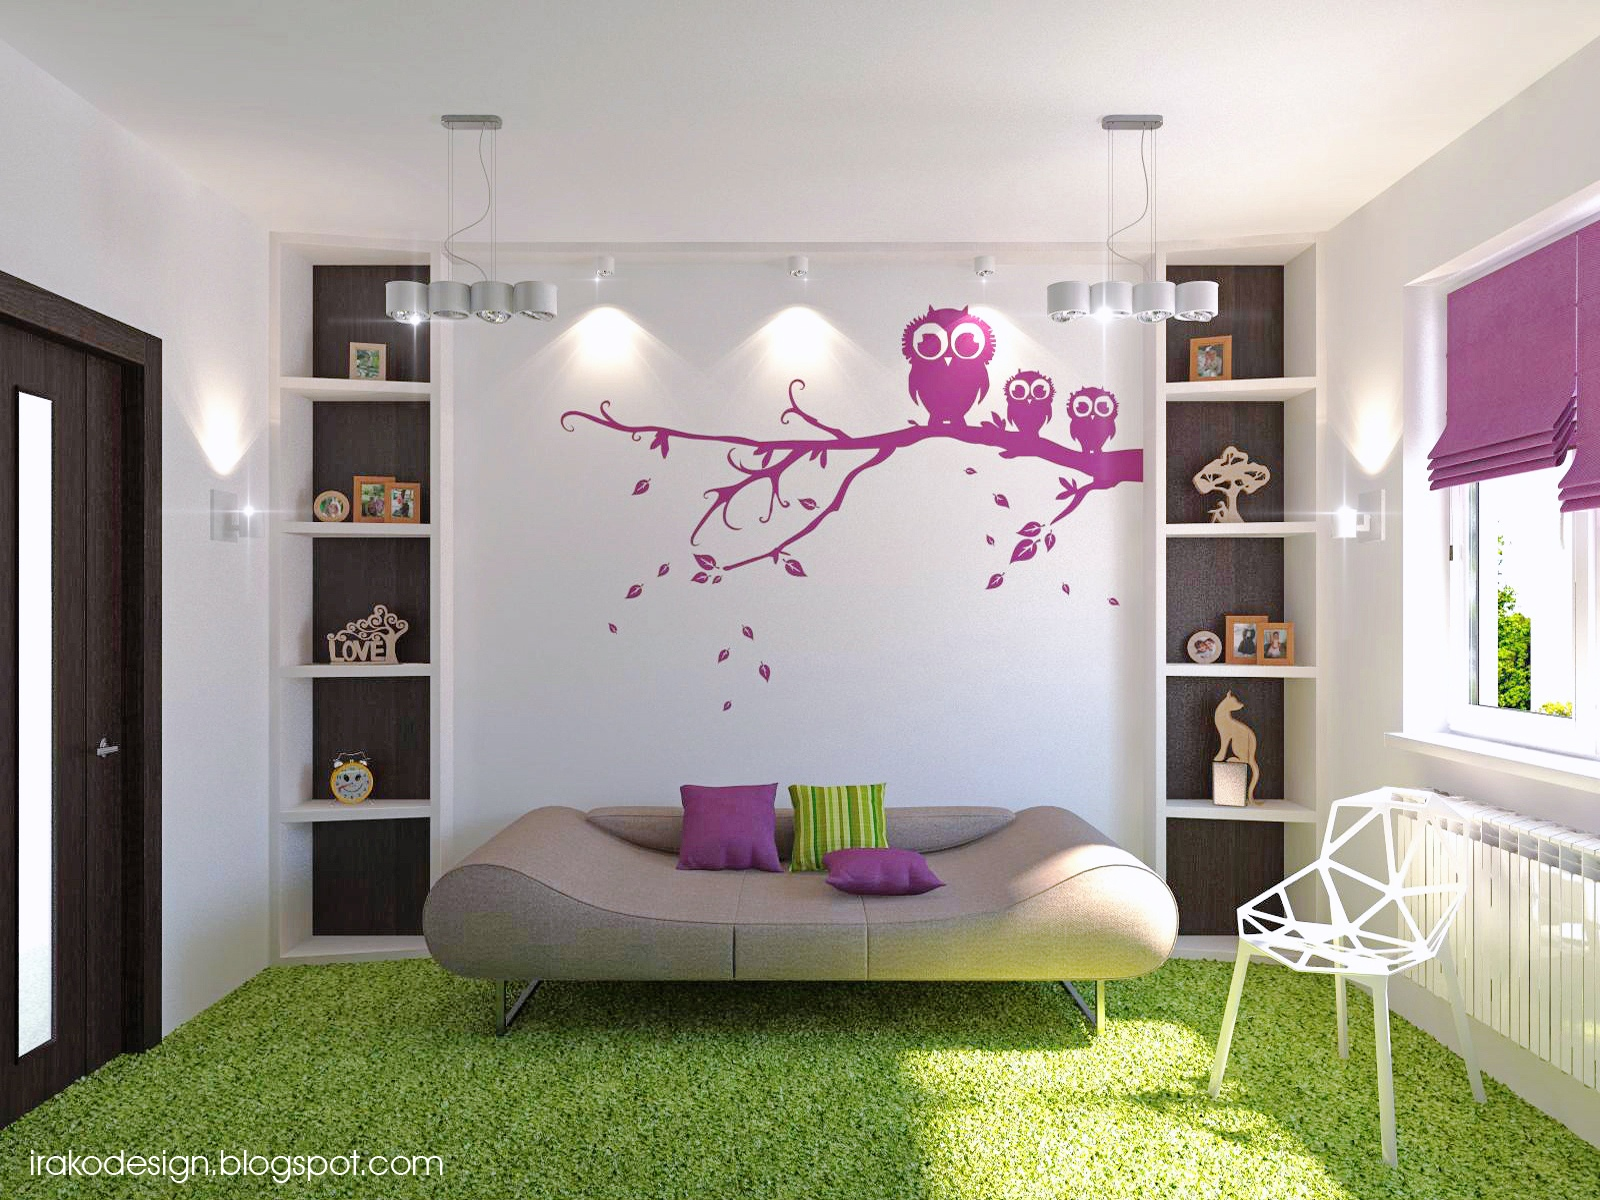 Bedroom designs for girls green - Bedroom Designs For Girls Green 10